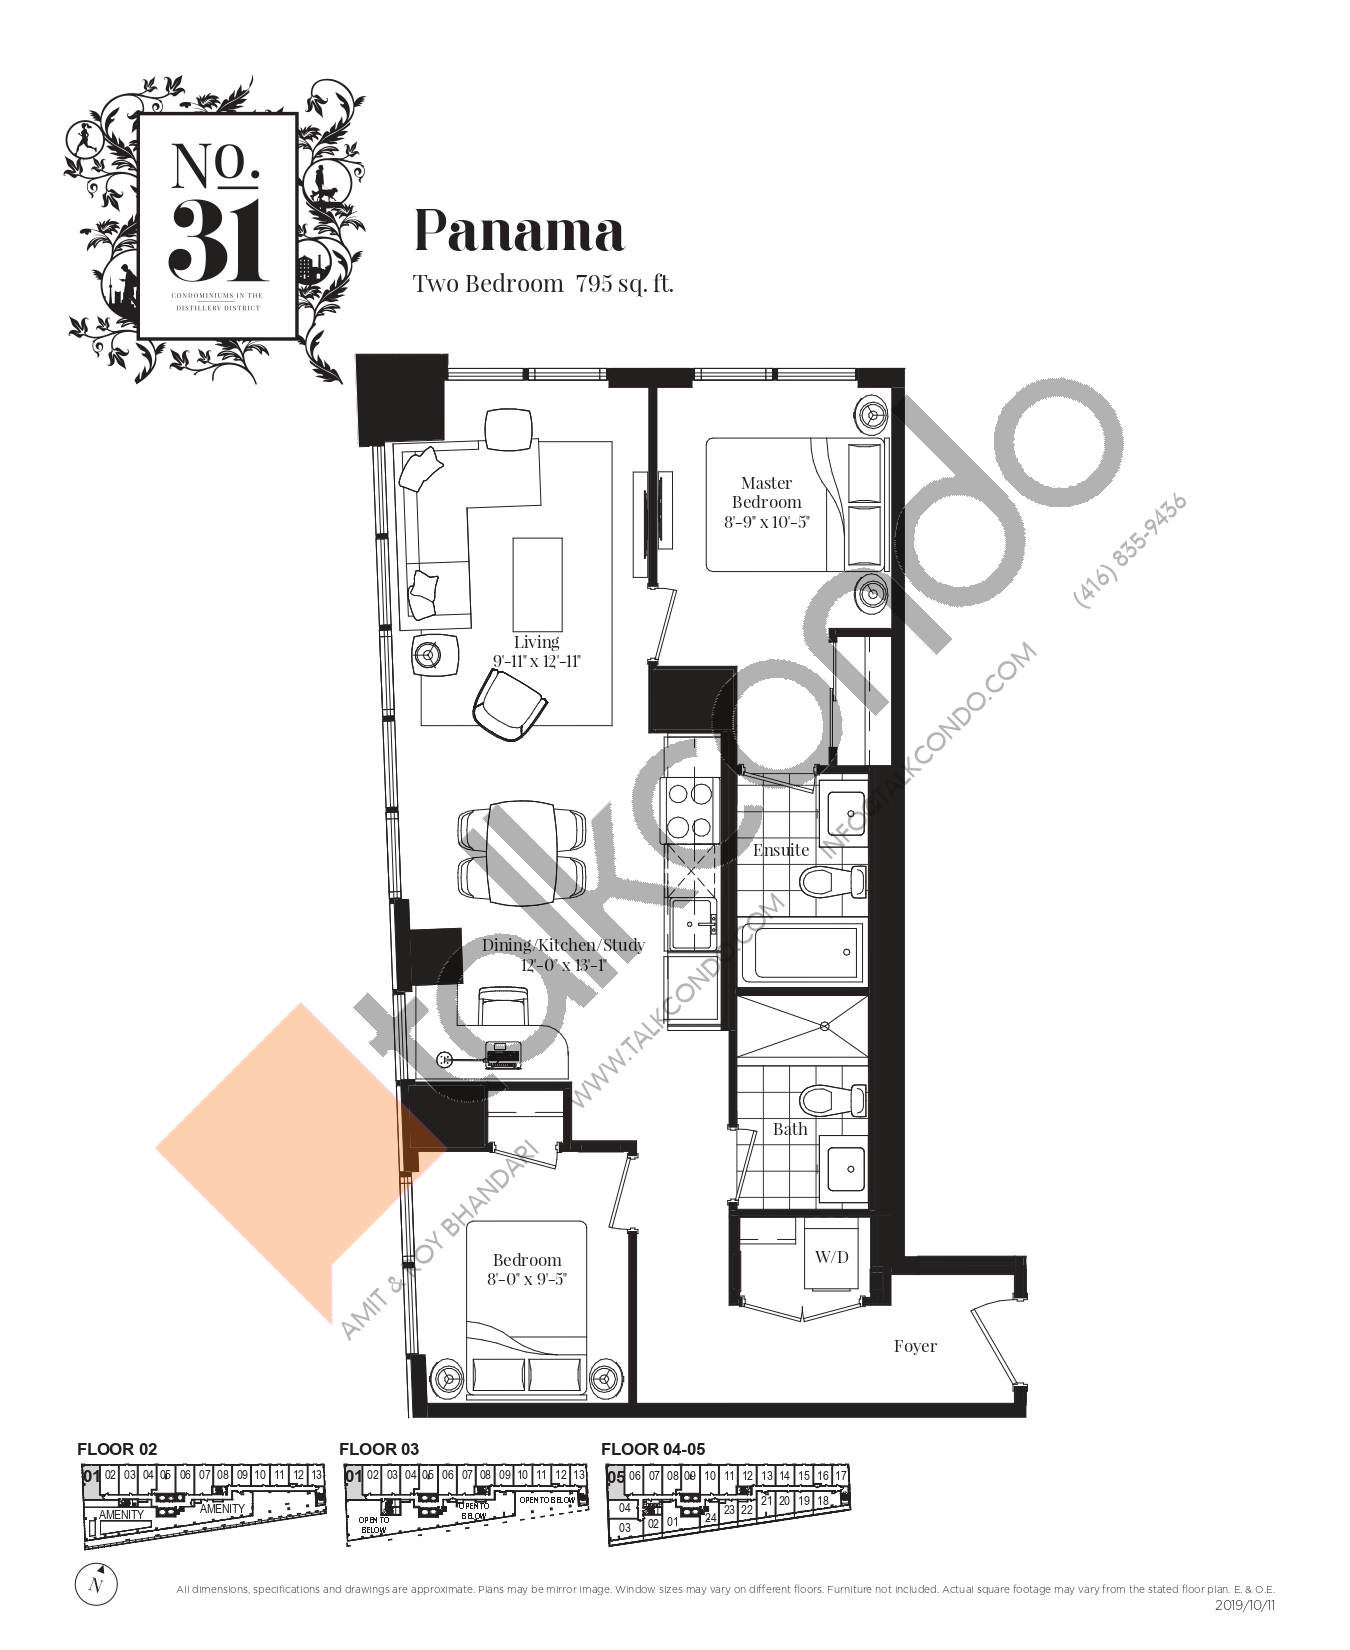 Panama Floor Plan at No. 31 Condos - 795 sq.ft